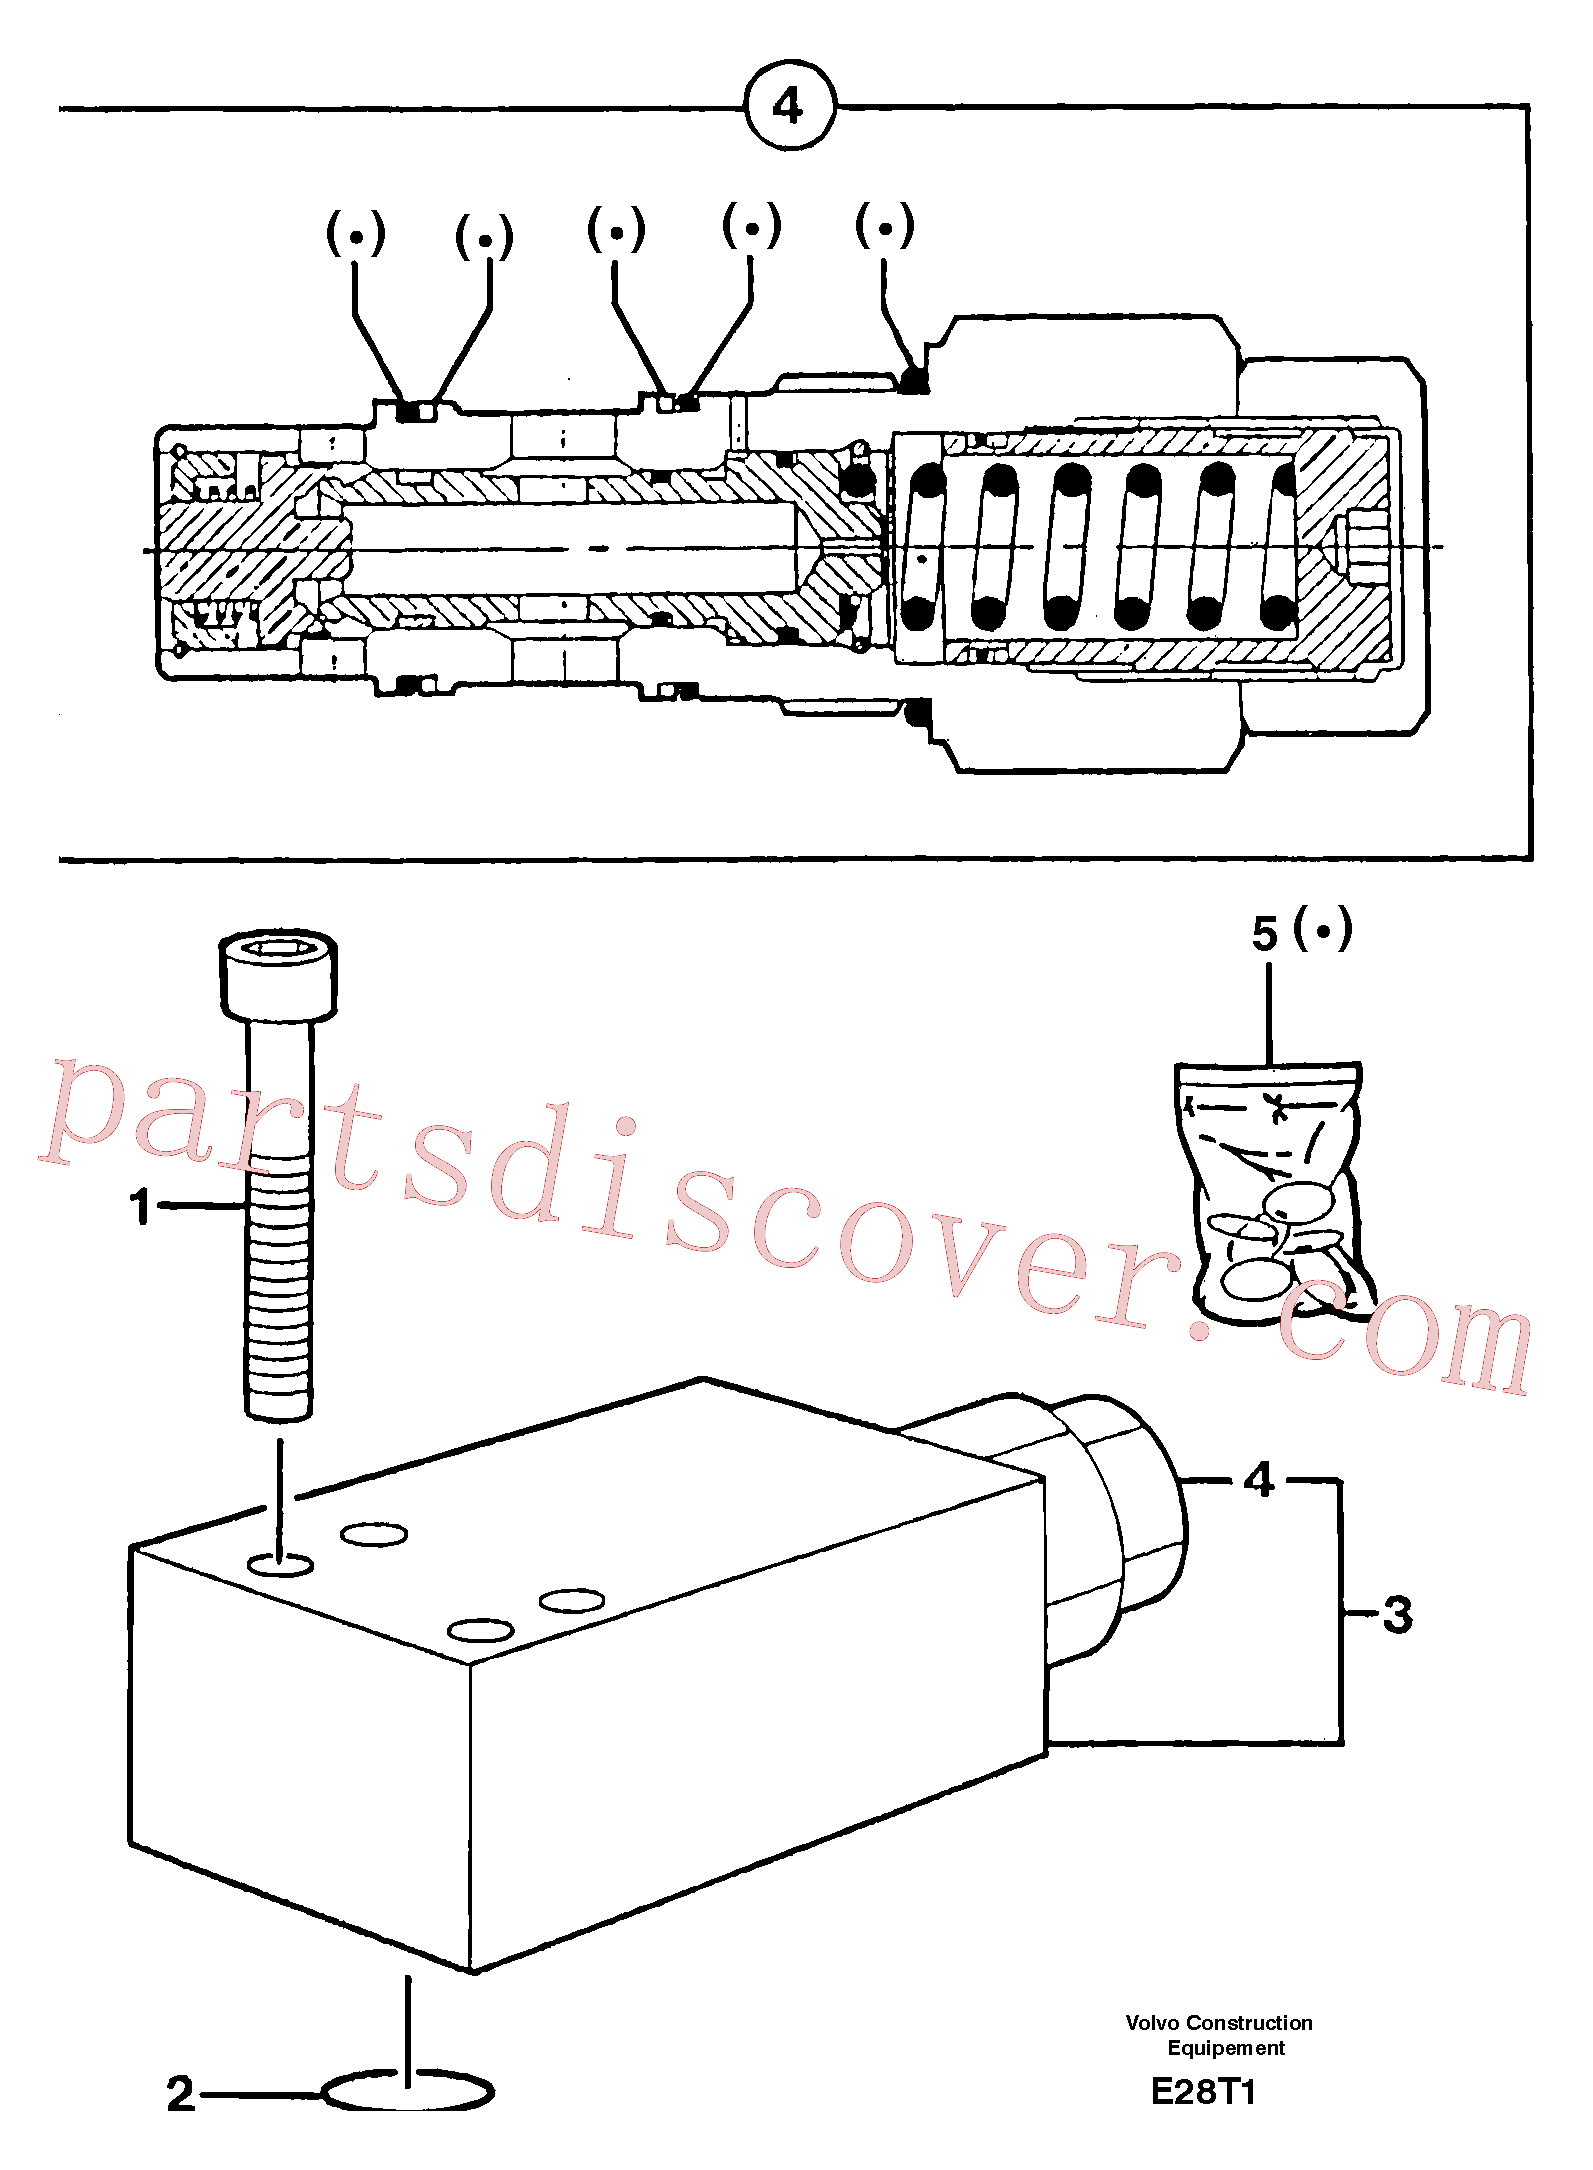 PJ5220024 for Volvo Safety valve ( dipper arm cylinder )(E28T1 assembly)